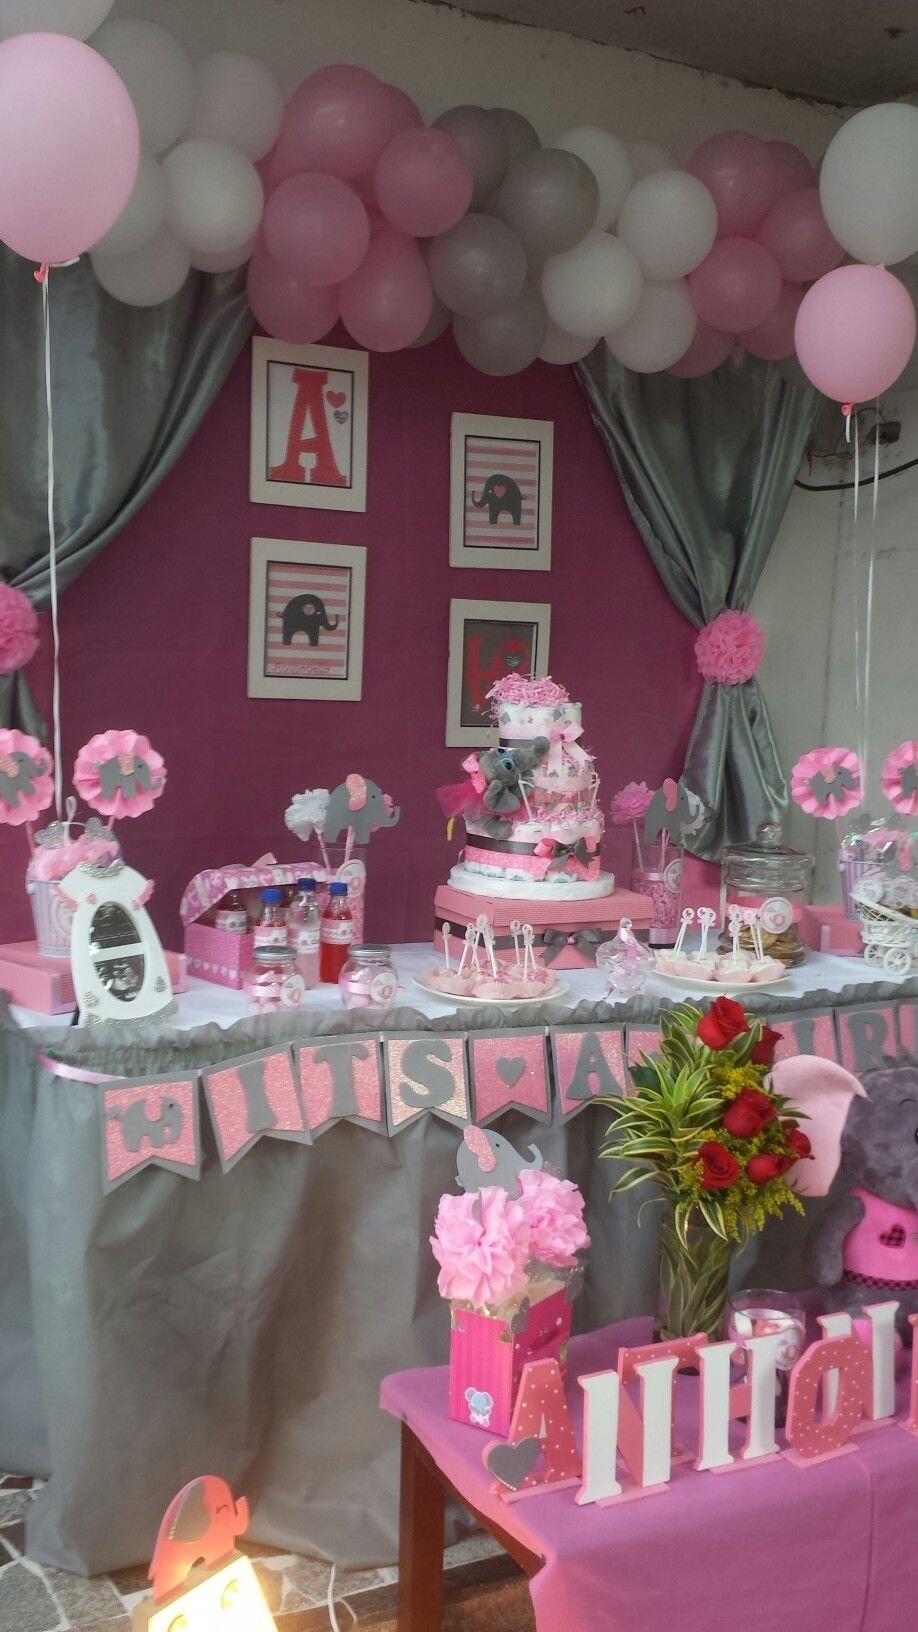 10 Fabulous Decorations For Baby Shower Ideas elephant pink and grey baby shower pinteres 7 2021